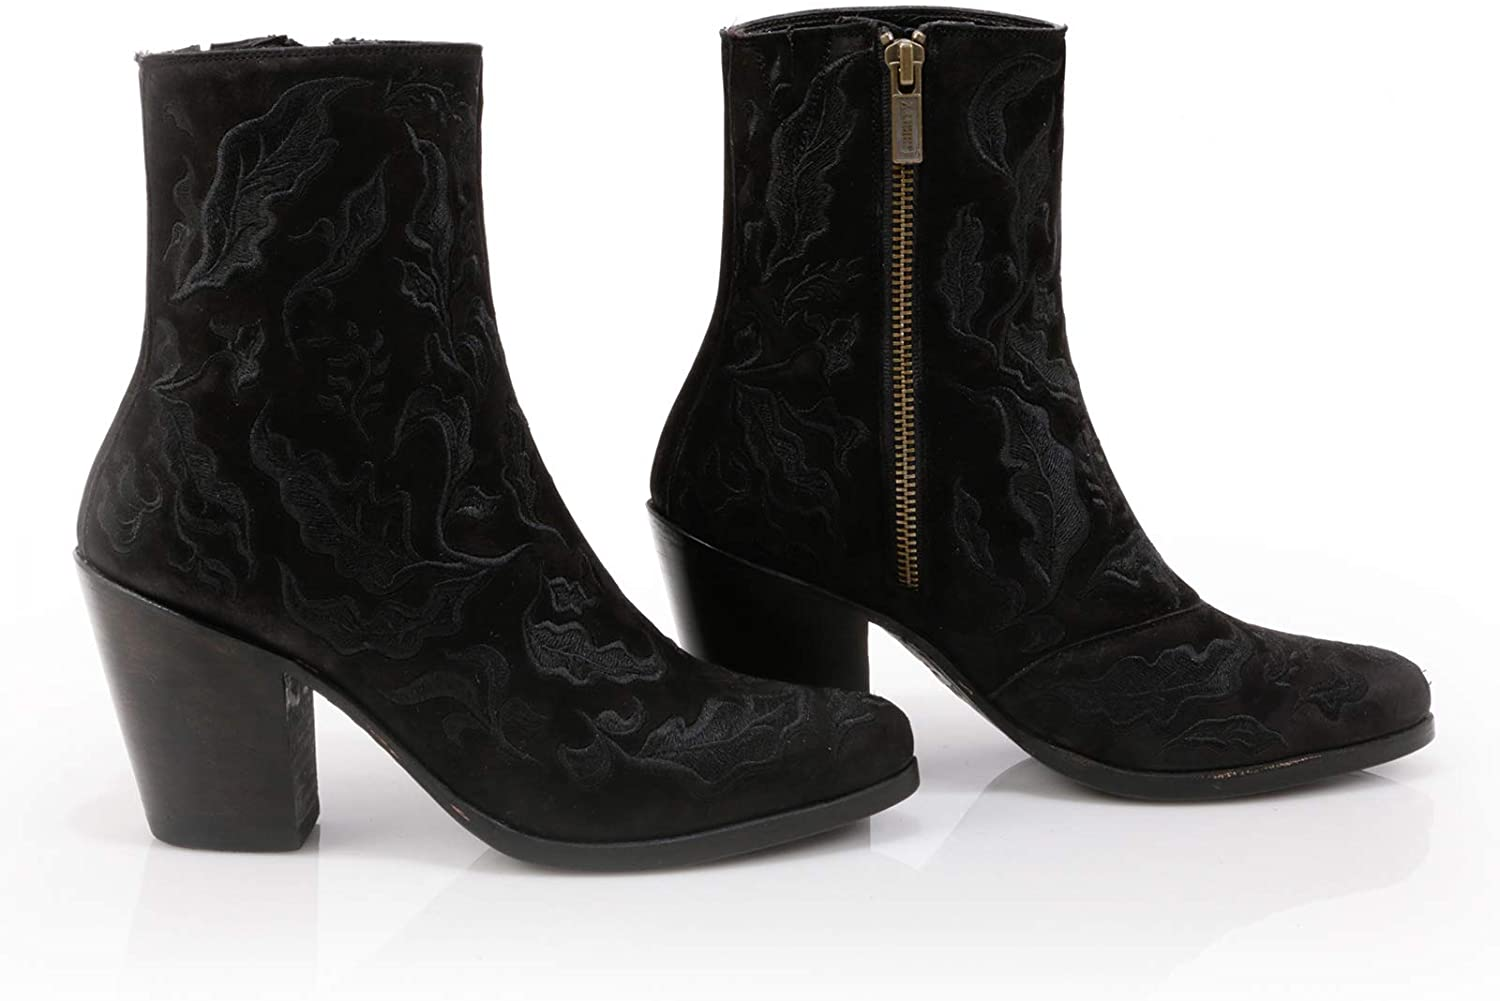 LIBERTY BLACK Aria Embroidered Women´s Ankle Boot Black 7 US